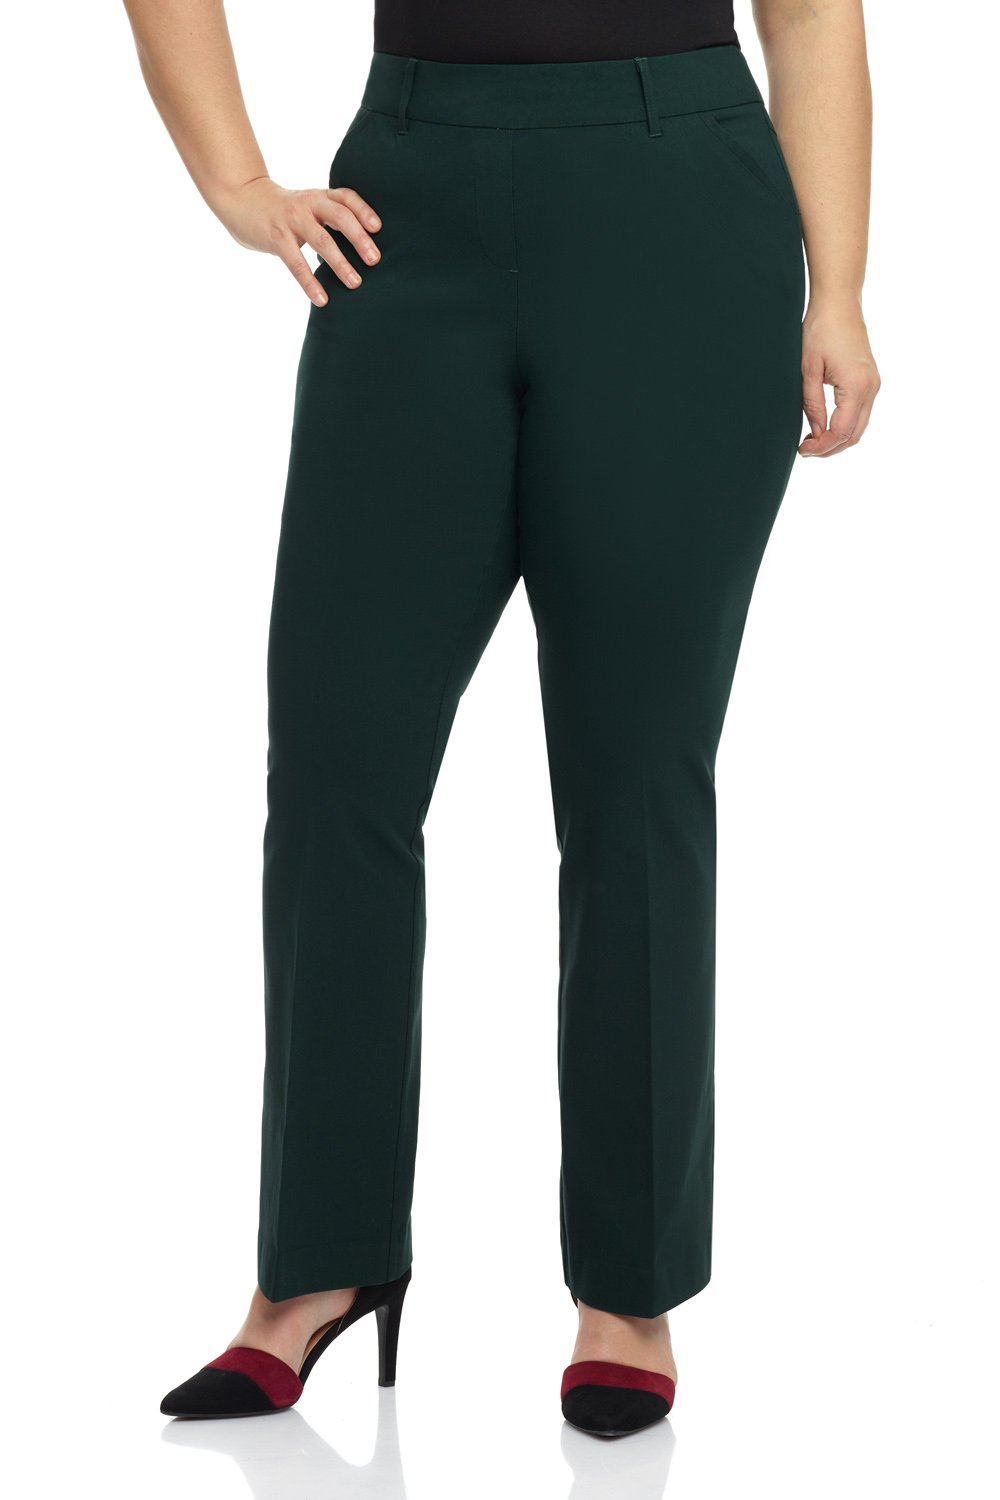 Rekucci Curvy Woman Ease In To Comfort Fit Barely Bootcut Plus Size Pant